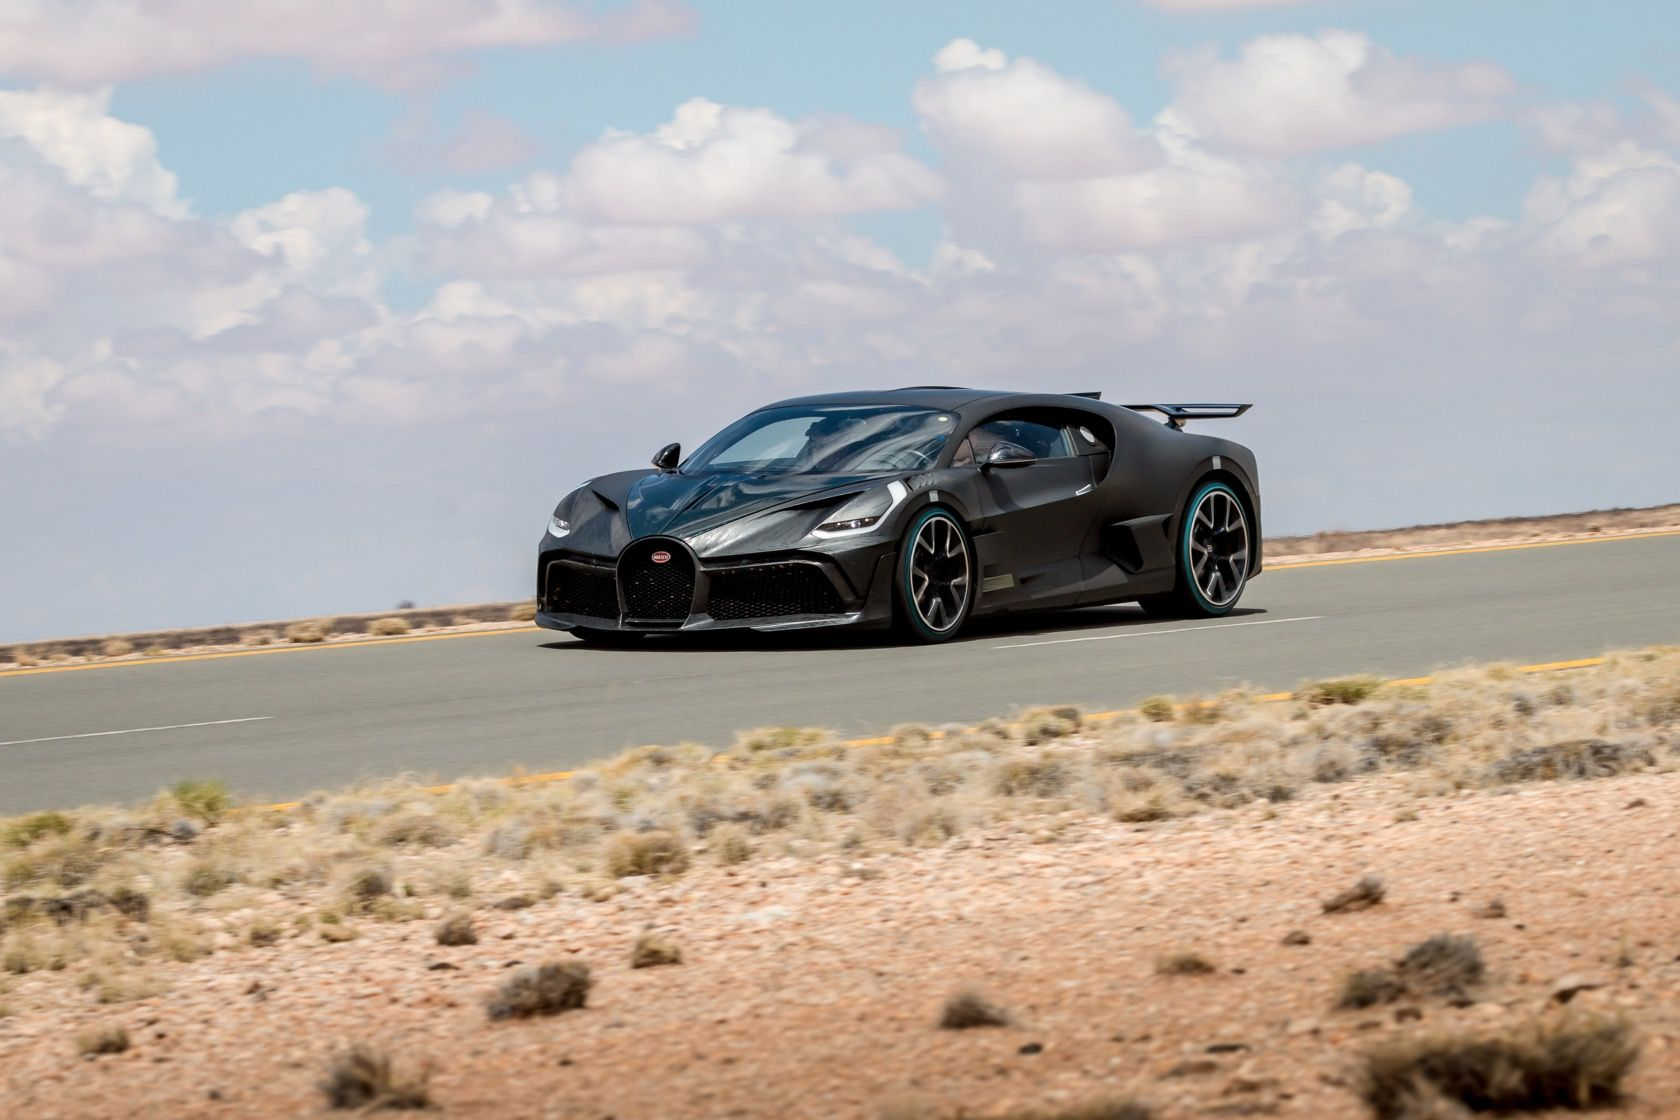 The 5 5m Bugatti Divo Hypercar Is Finally Ready To Show What It Can Do In 2020 Bugatti Fast Sports Cars Classy Cars